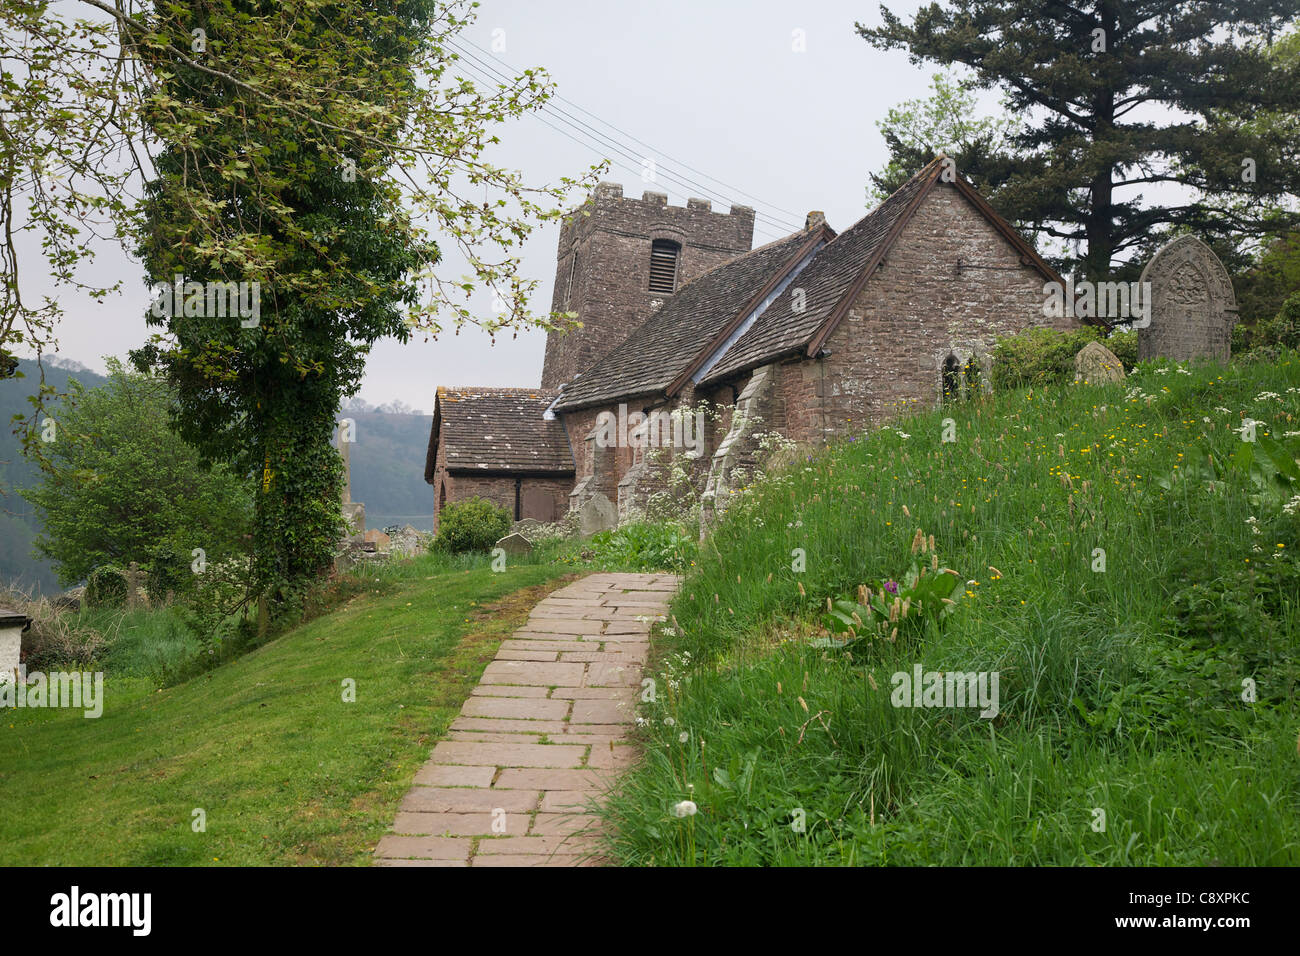 St Martins' Church at Cwmyoy, Vale of Eywas, Black Mountains, Monmouthshire, Wales - Stock Image